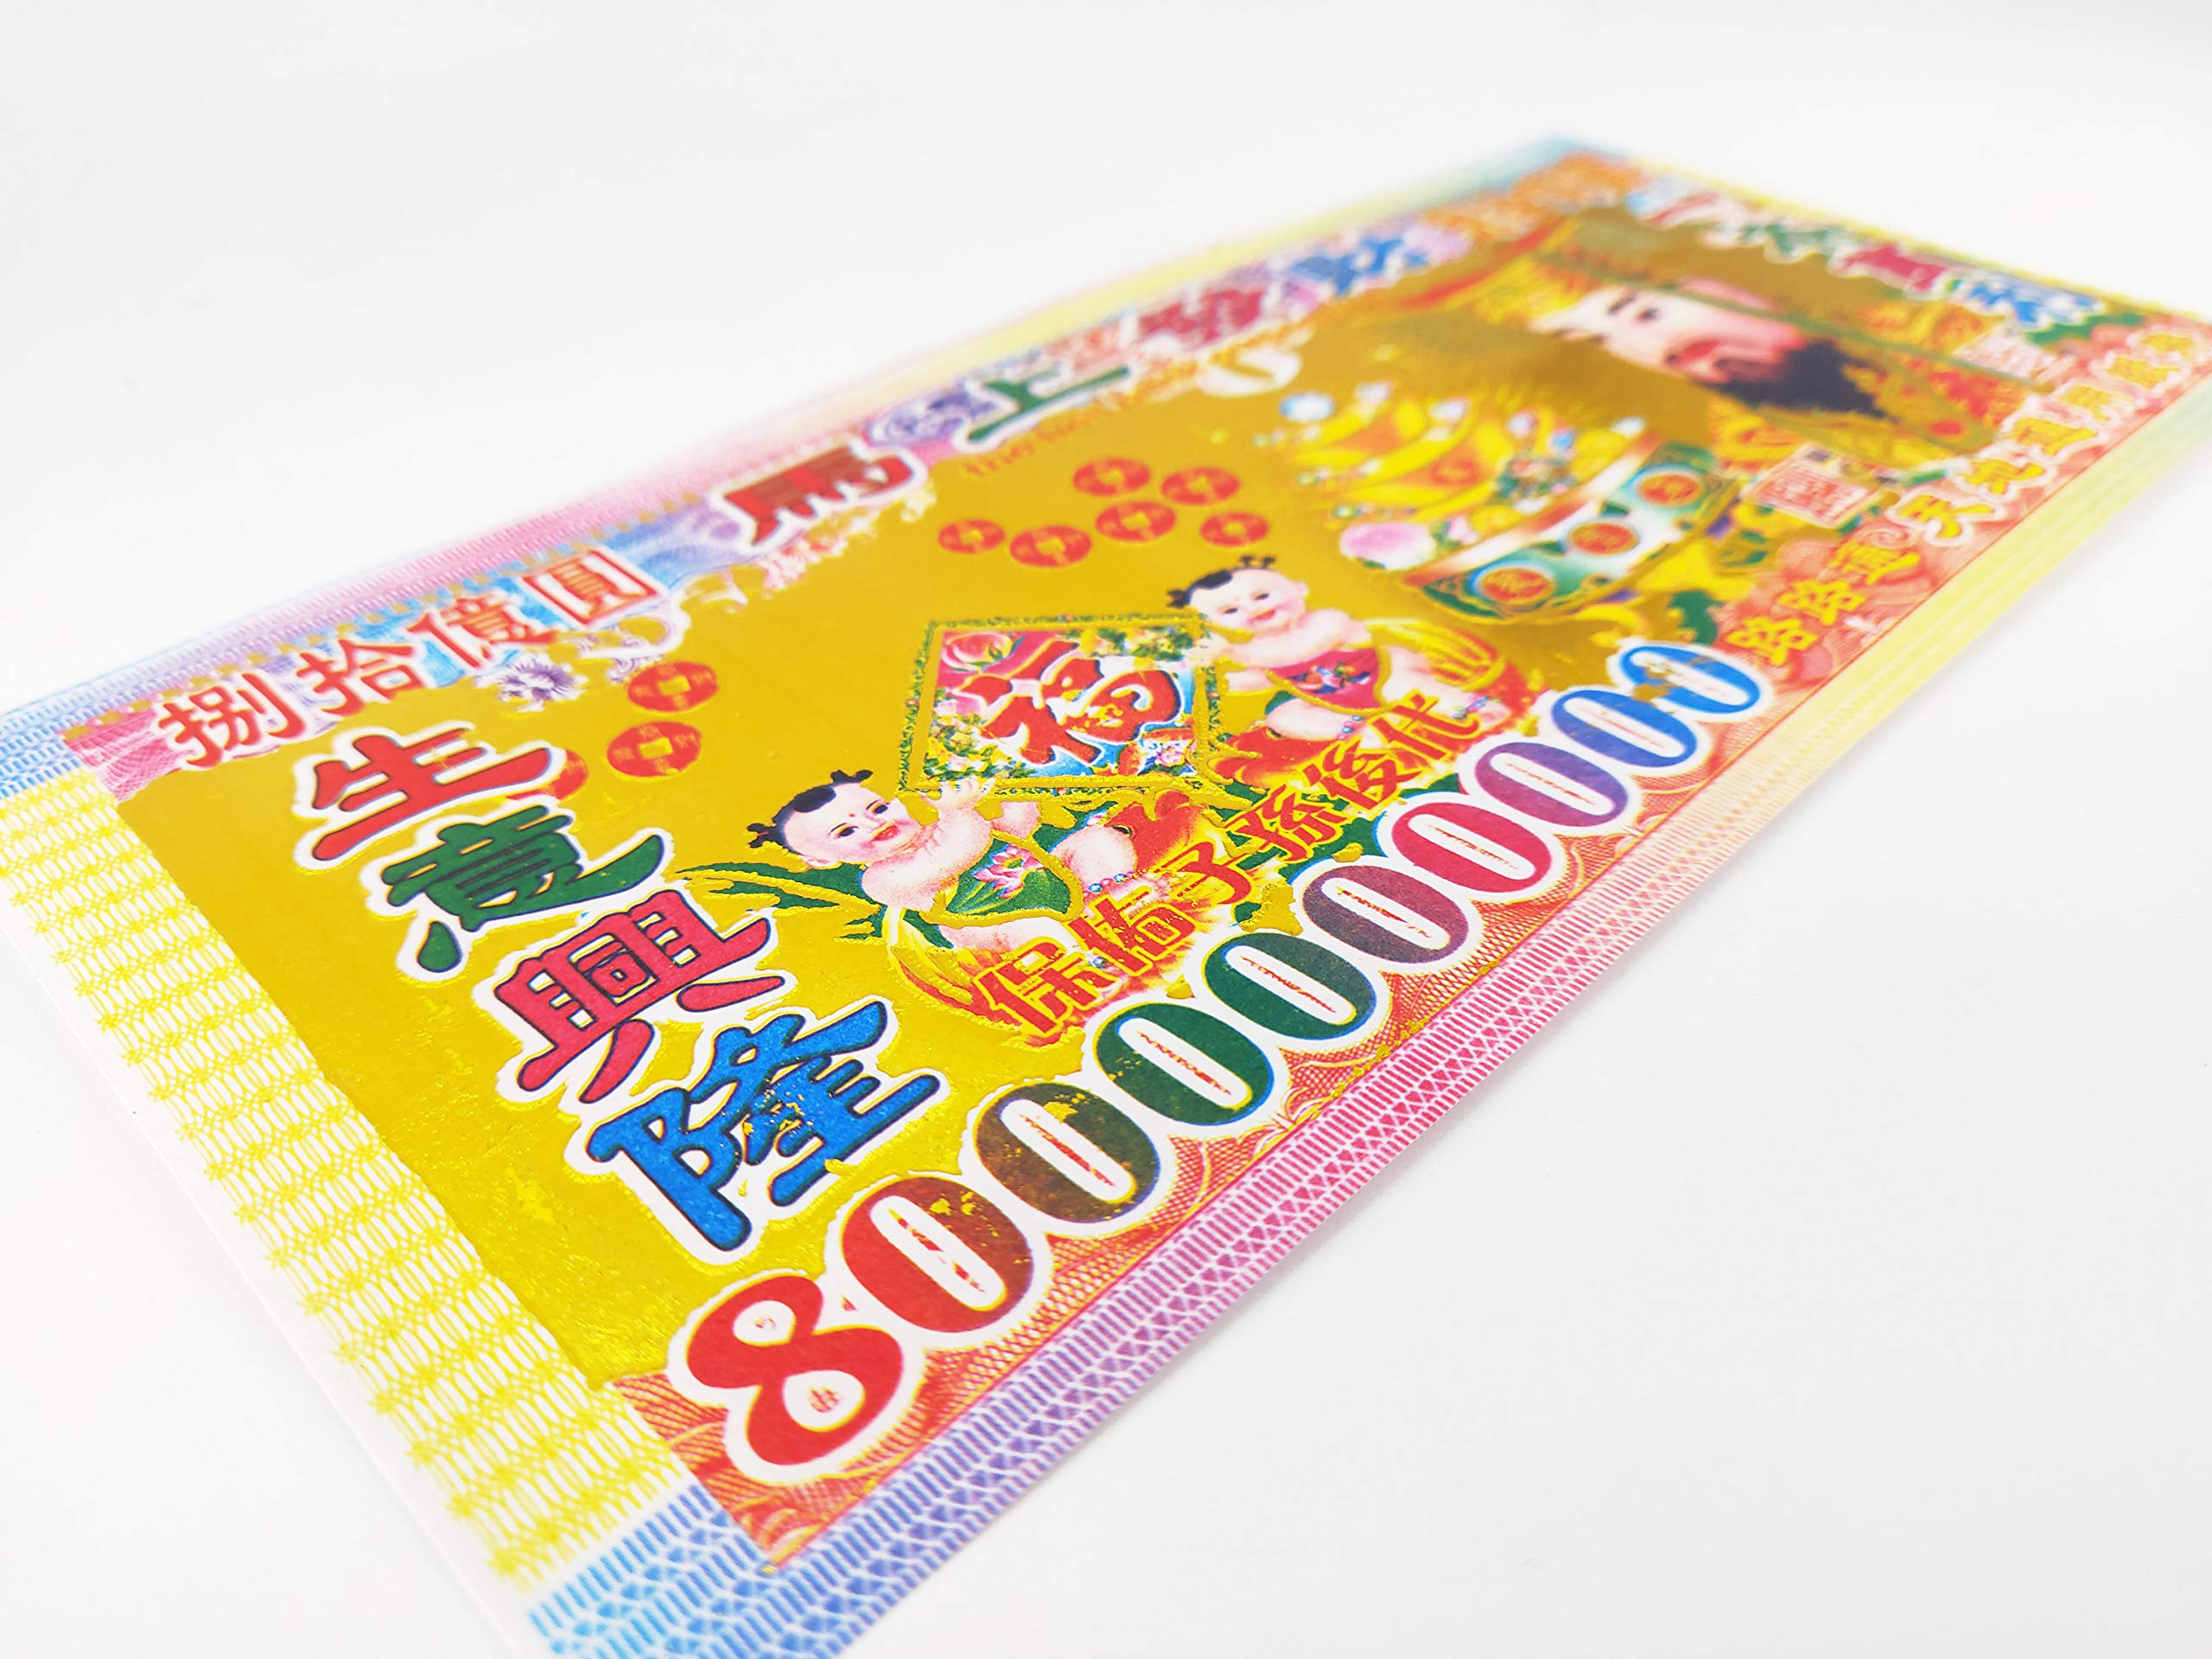 Tomb-Sweeping Chinese Joss Paper Money - Three Hell Bank Note $10,000 -New 3